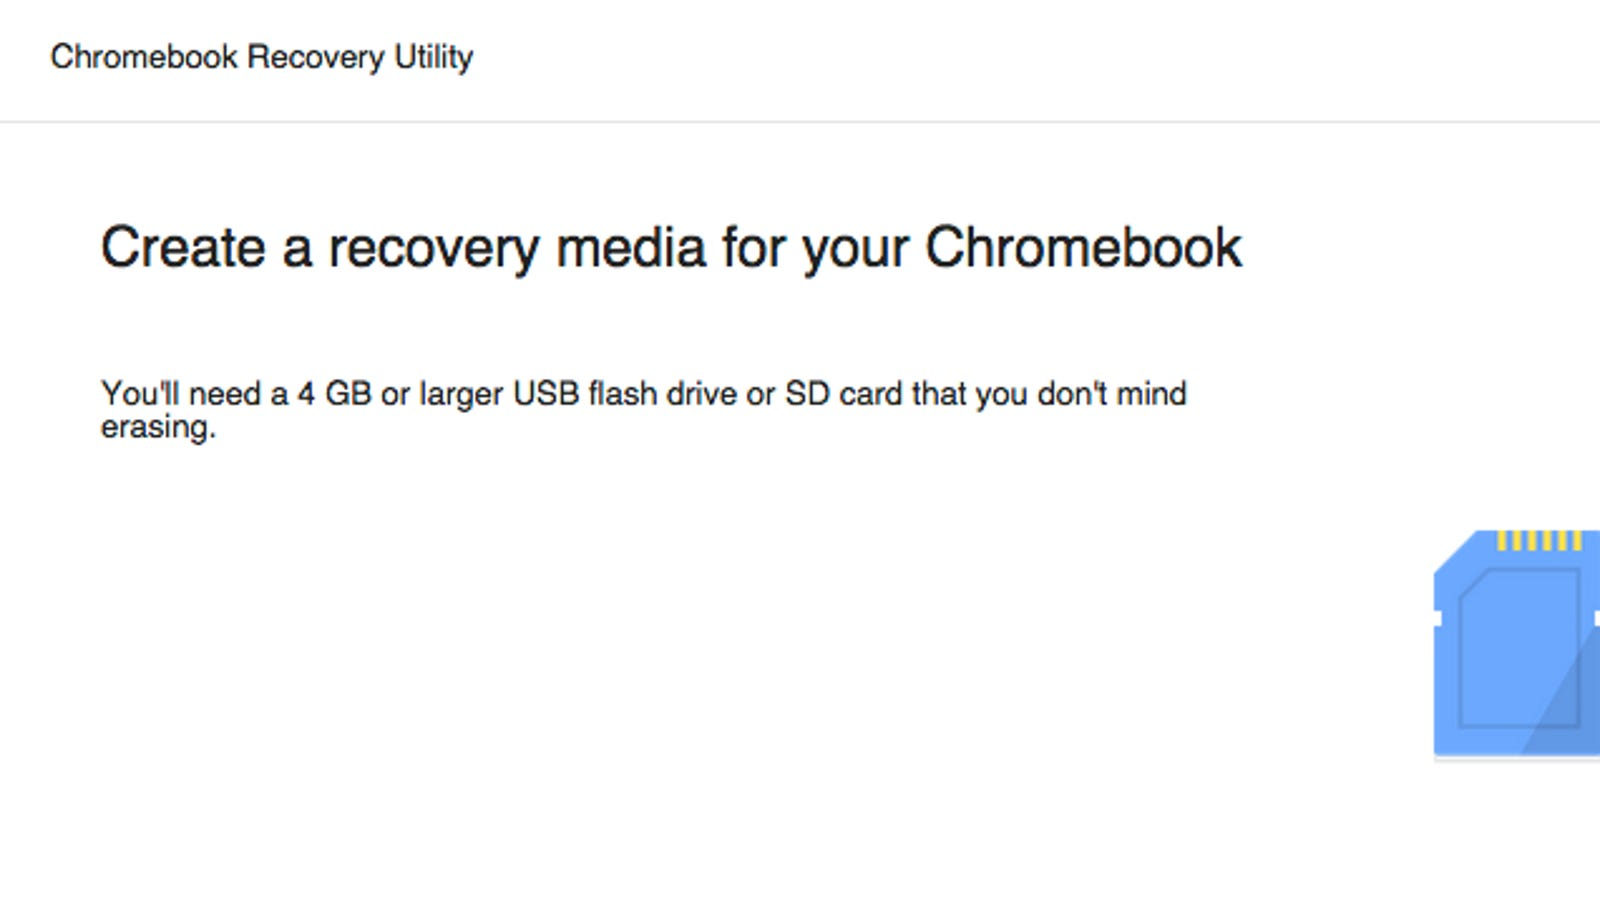 Chromebook Recovery Utility Makes Recovery Media For Your